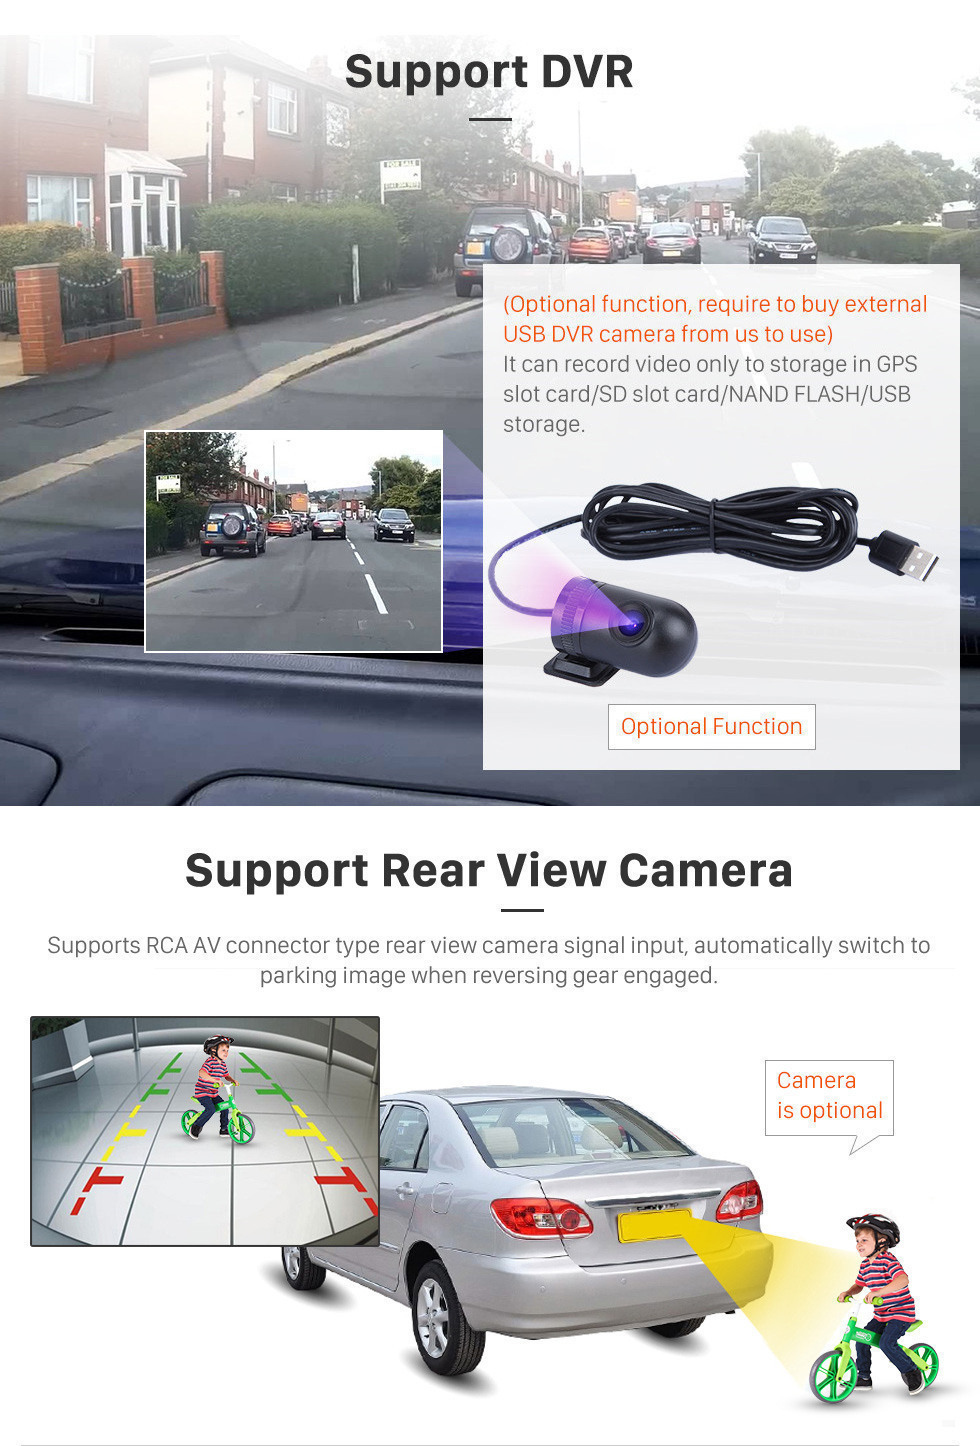 Seicane Android 10.0 2008-2015 Mazda 6 Rui Wing Radio GPS Navigation System with HD 1024*600 Touchscreen Bluetooth Mirror link TPMS OBD DVR Rearview camera TV USB 3G WIFI CPU Quad Core